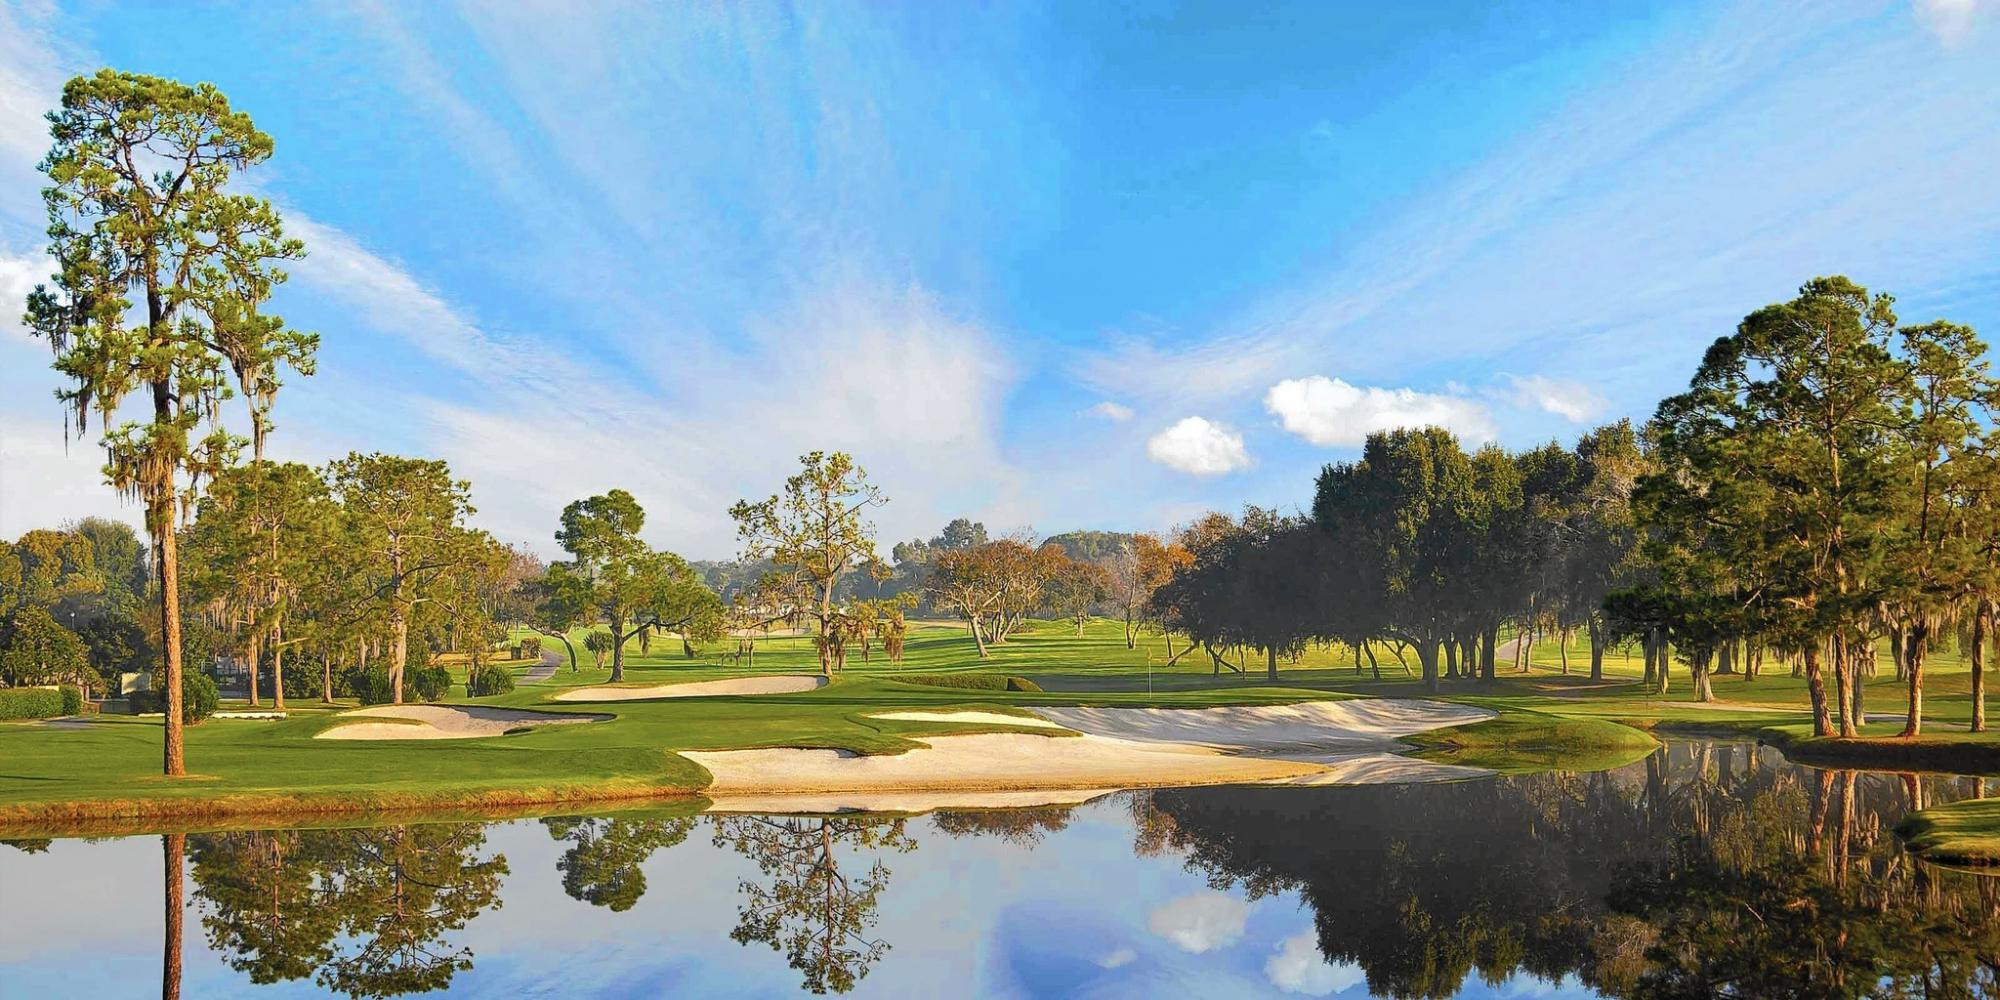 The Bay Hill Golf Club's picturesque golf course situated in incredible Florida.